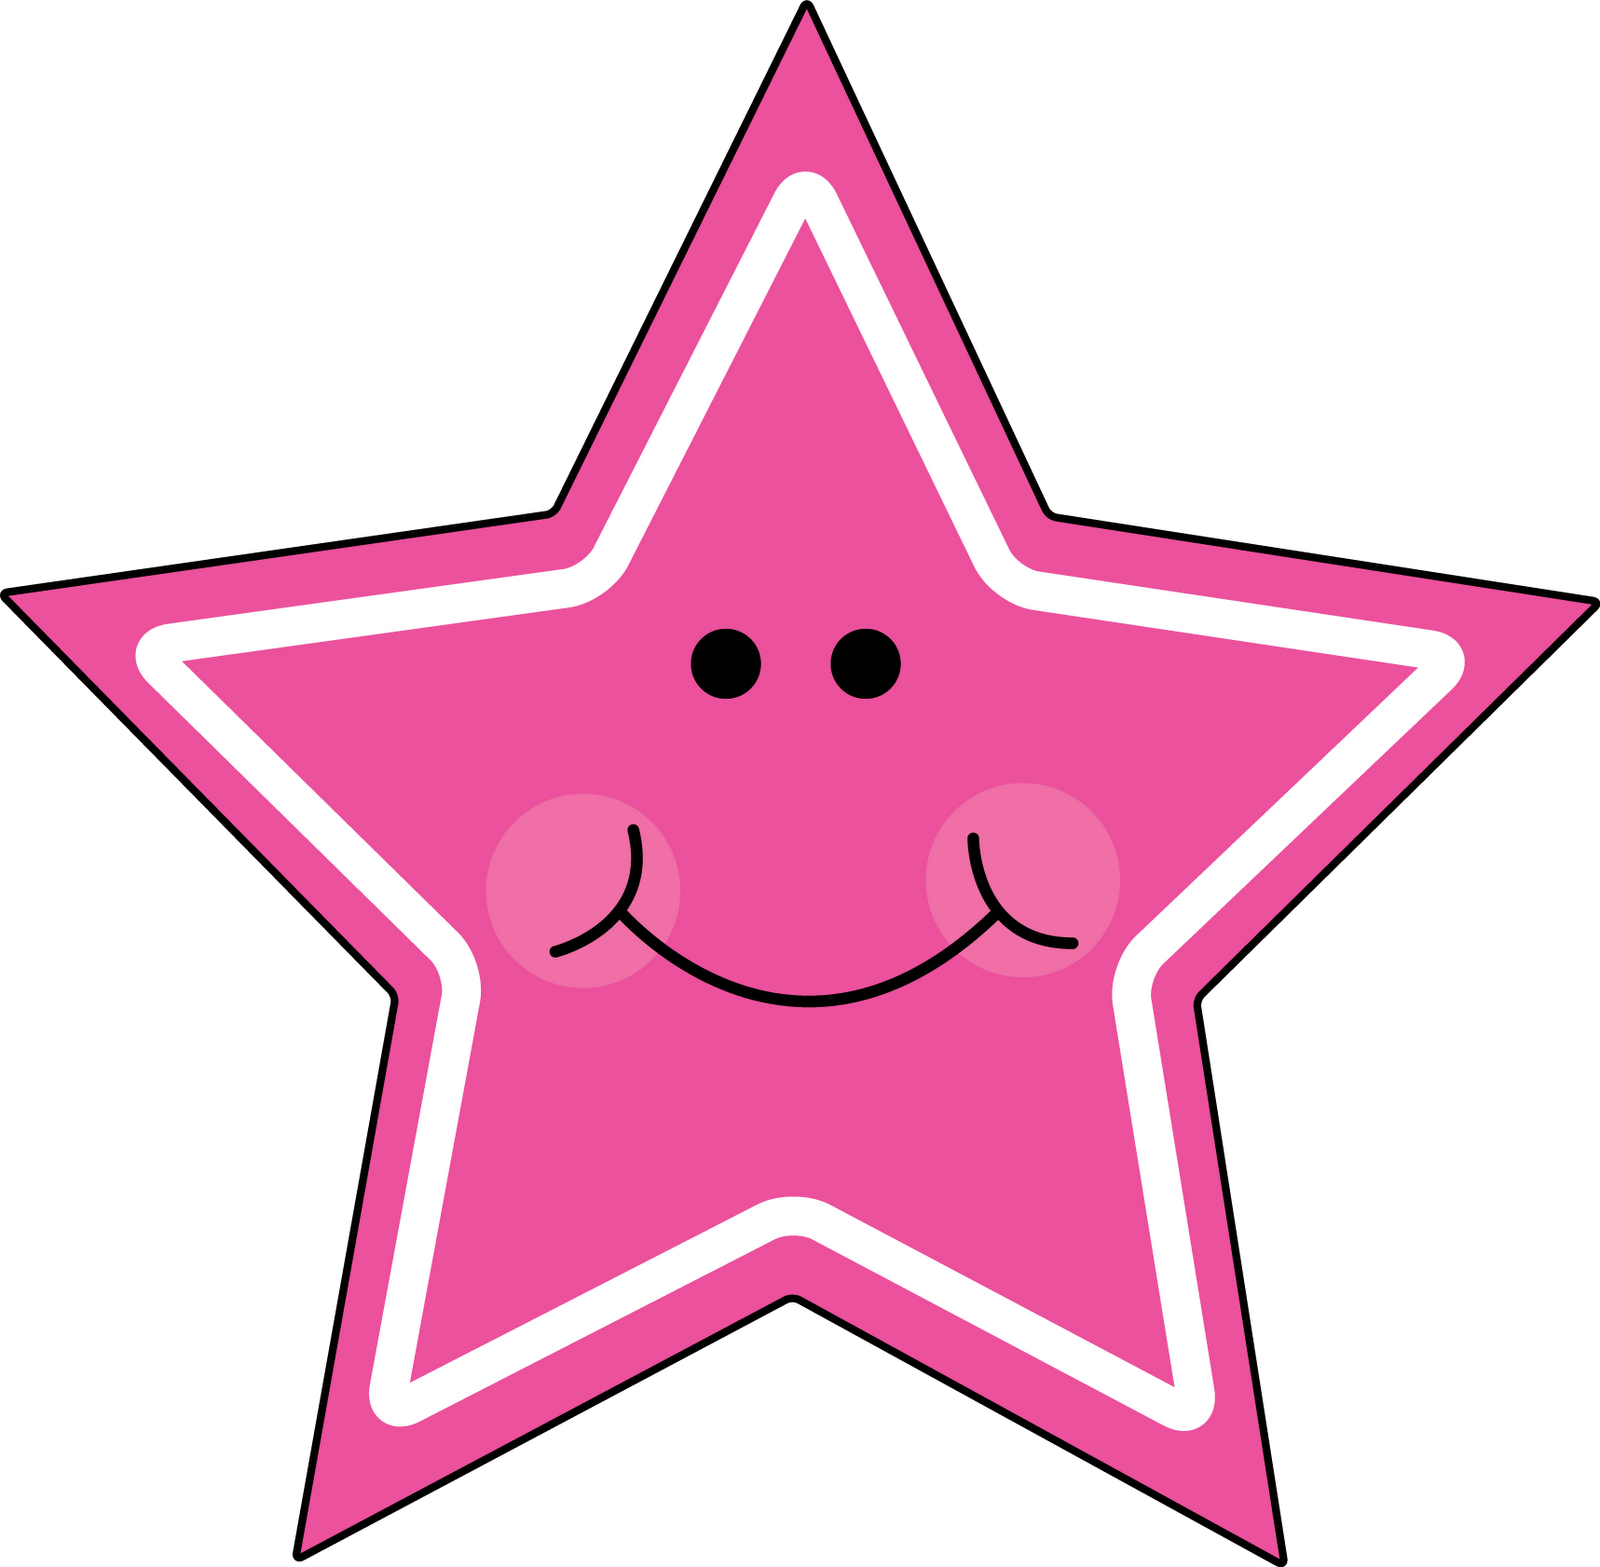 Free Stars Shapes, Download Free Clip Art, Free Clip Art on.